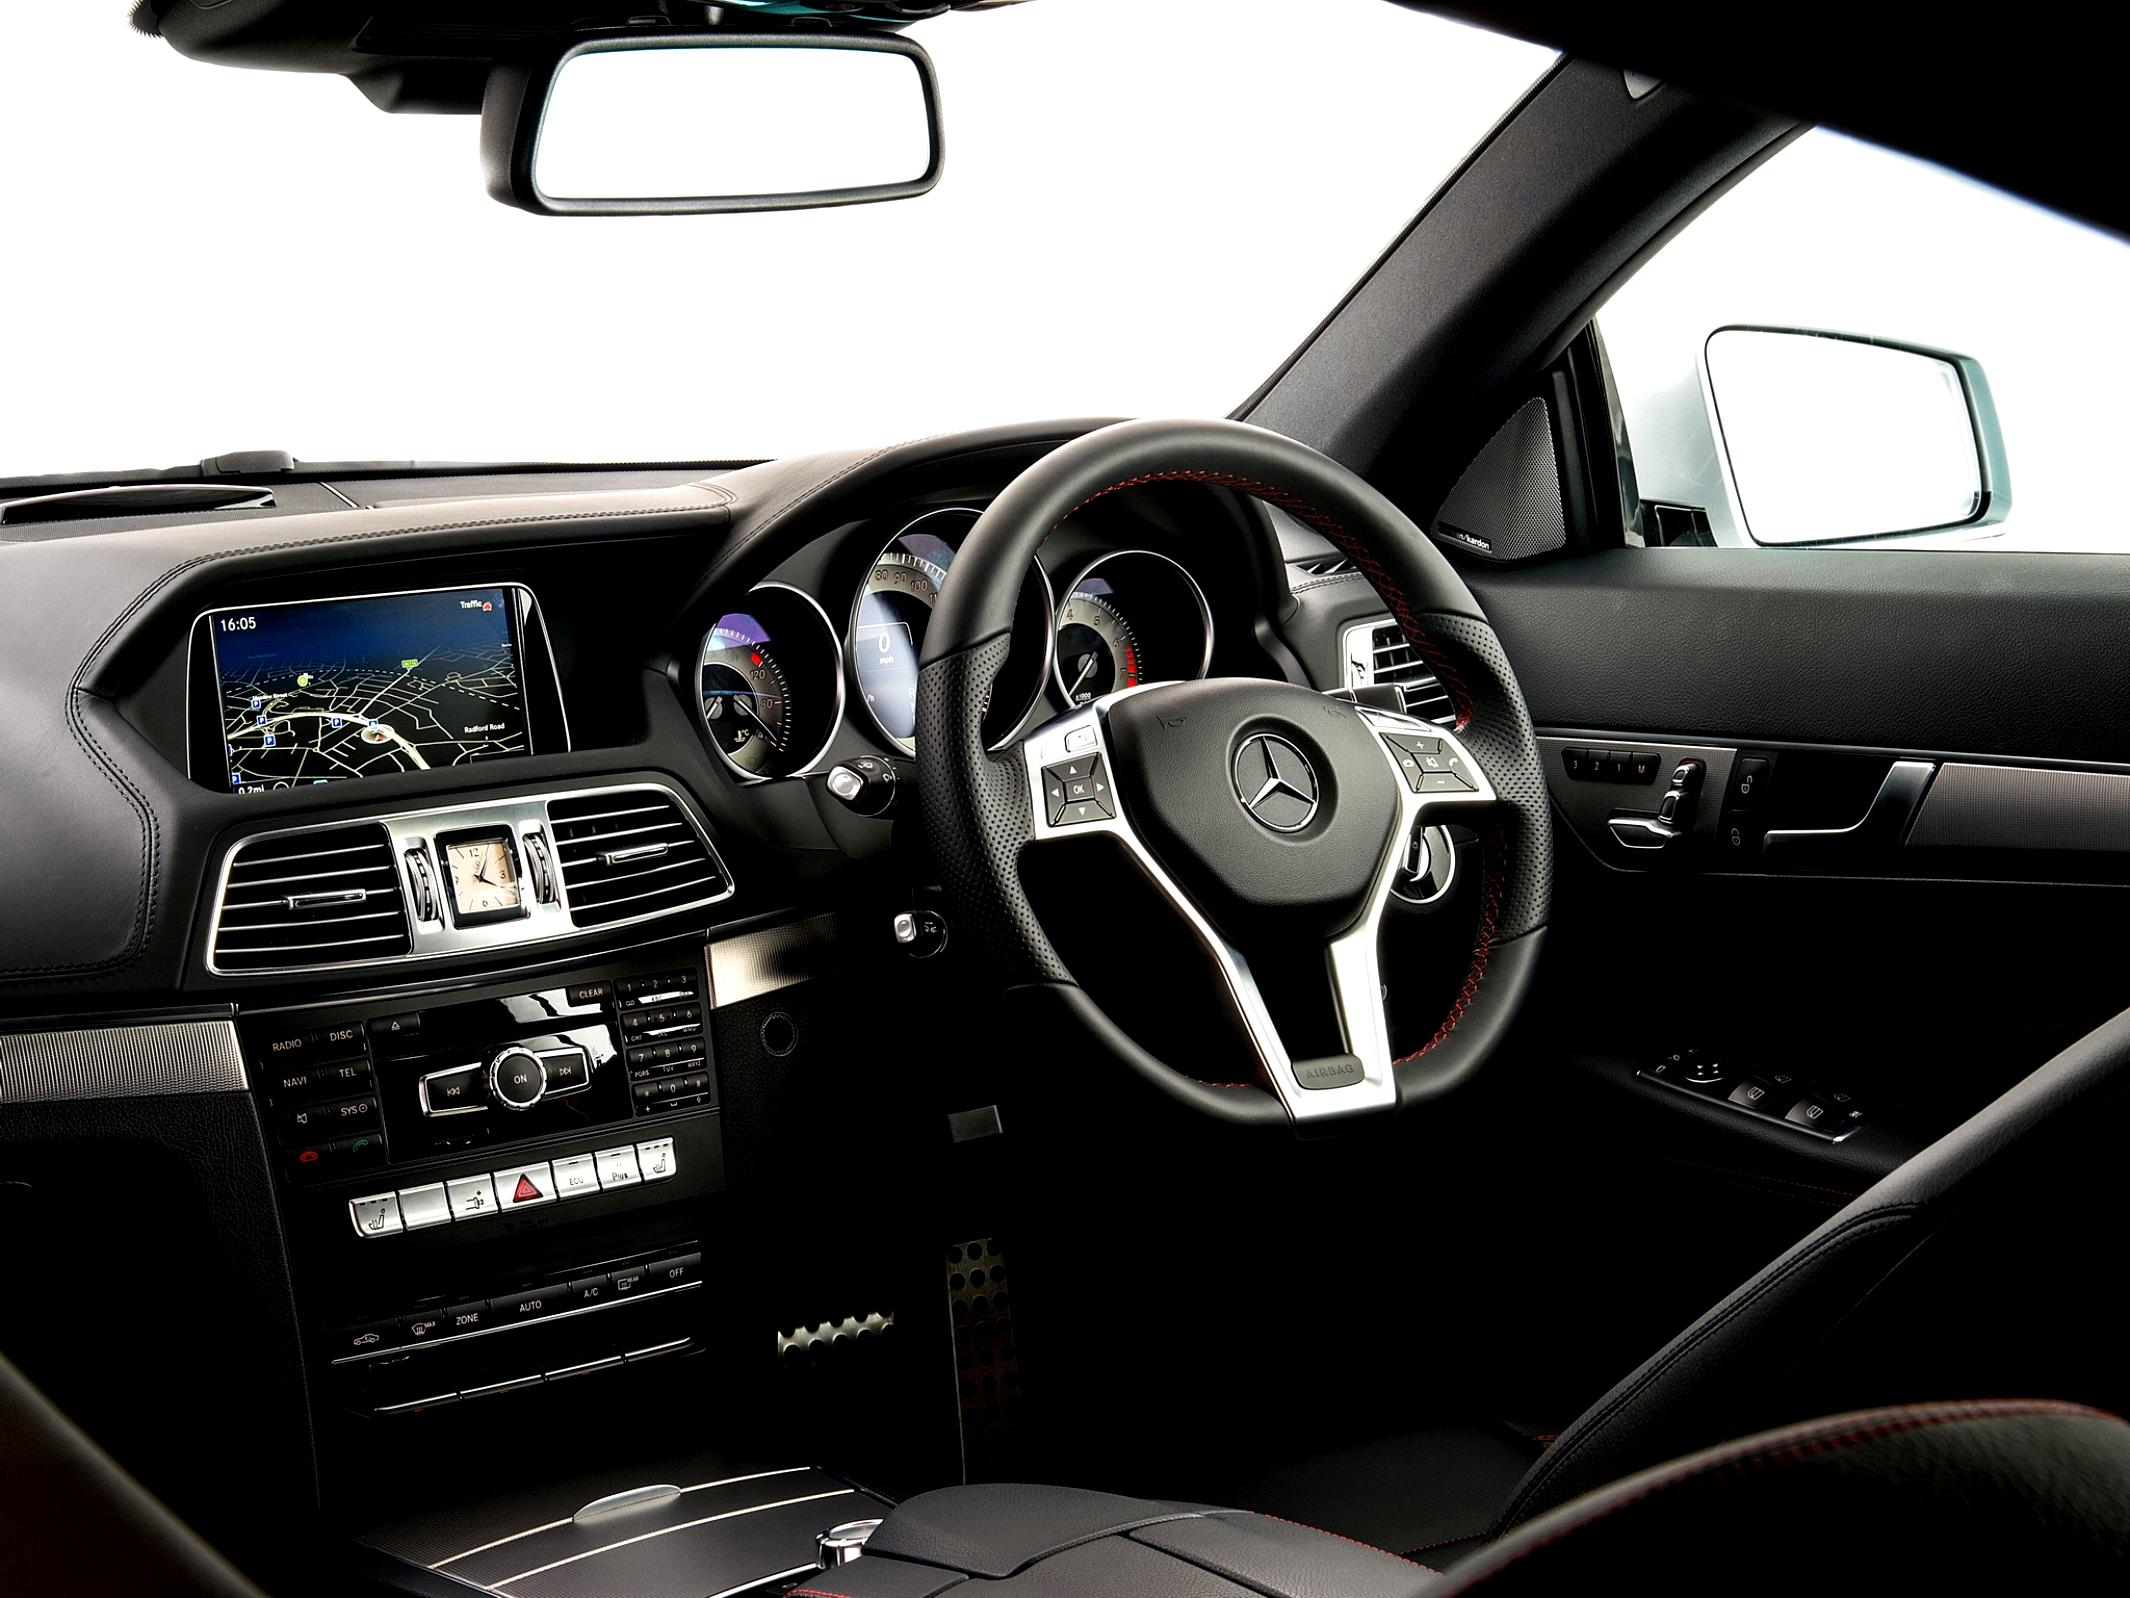 Mercedes Benz E-Klasse Coupe C207 2013 #93